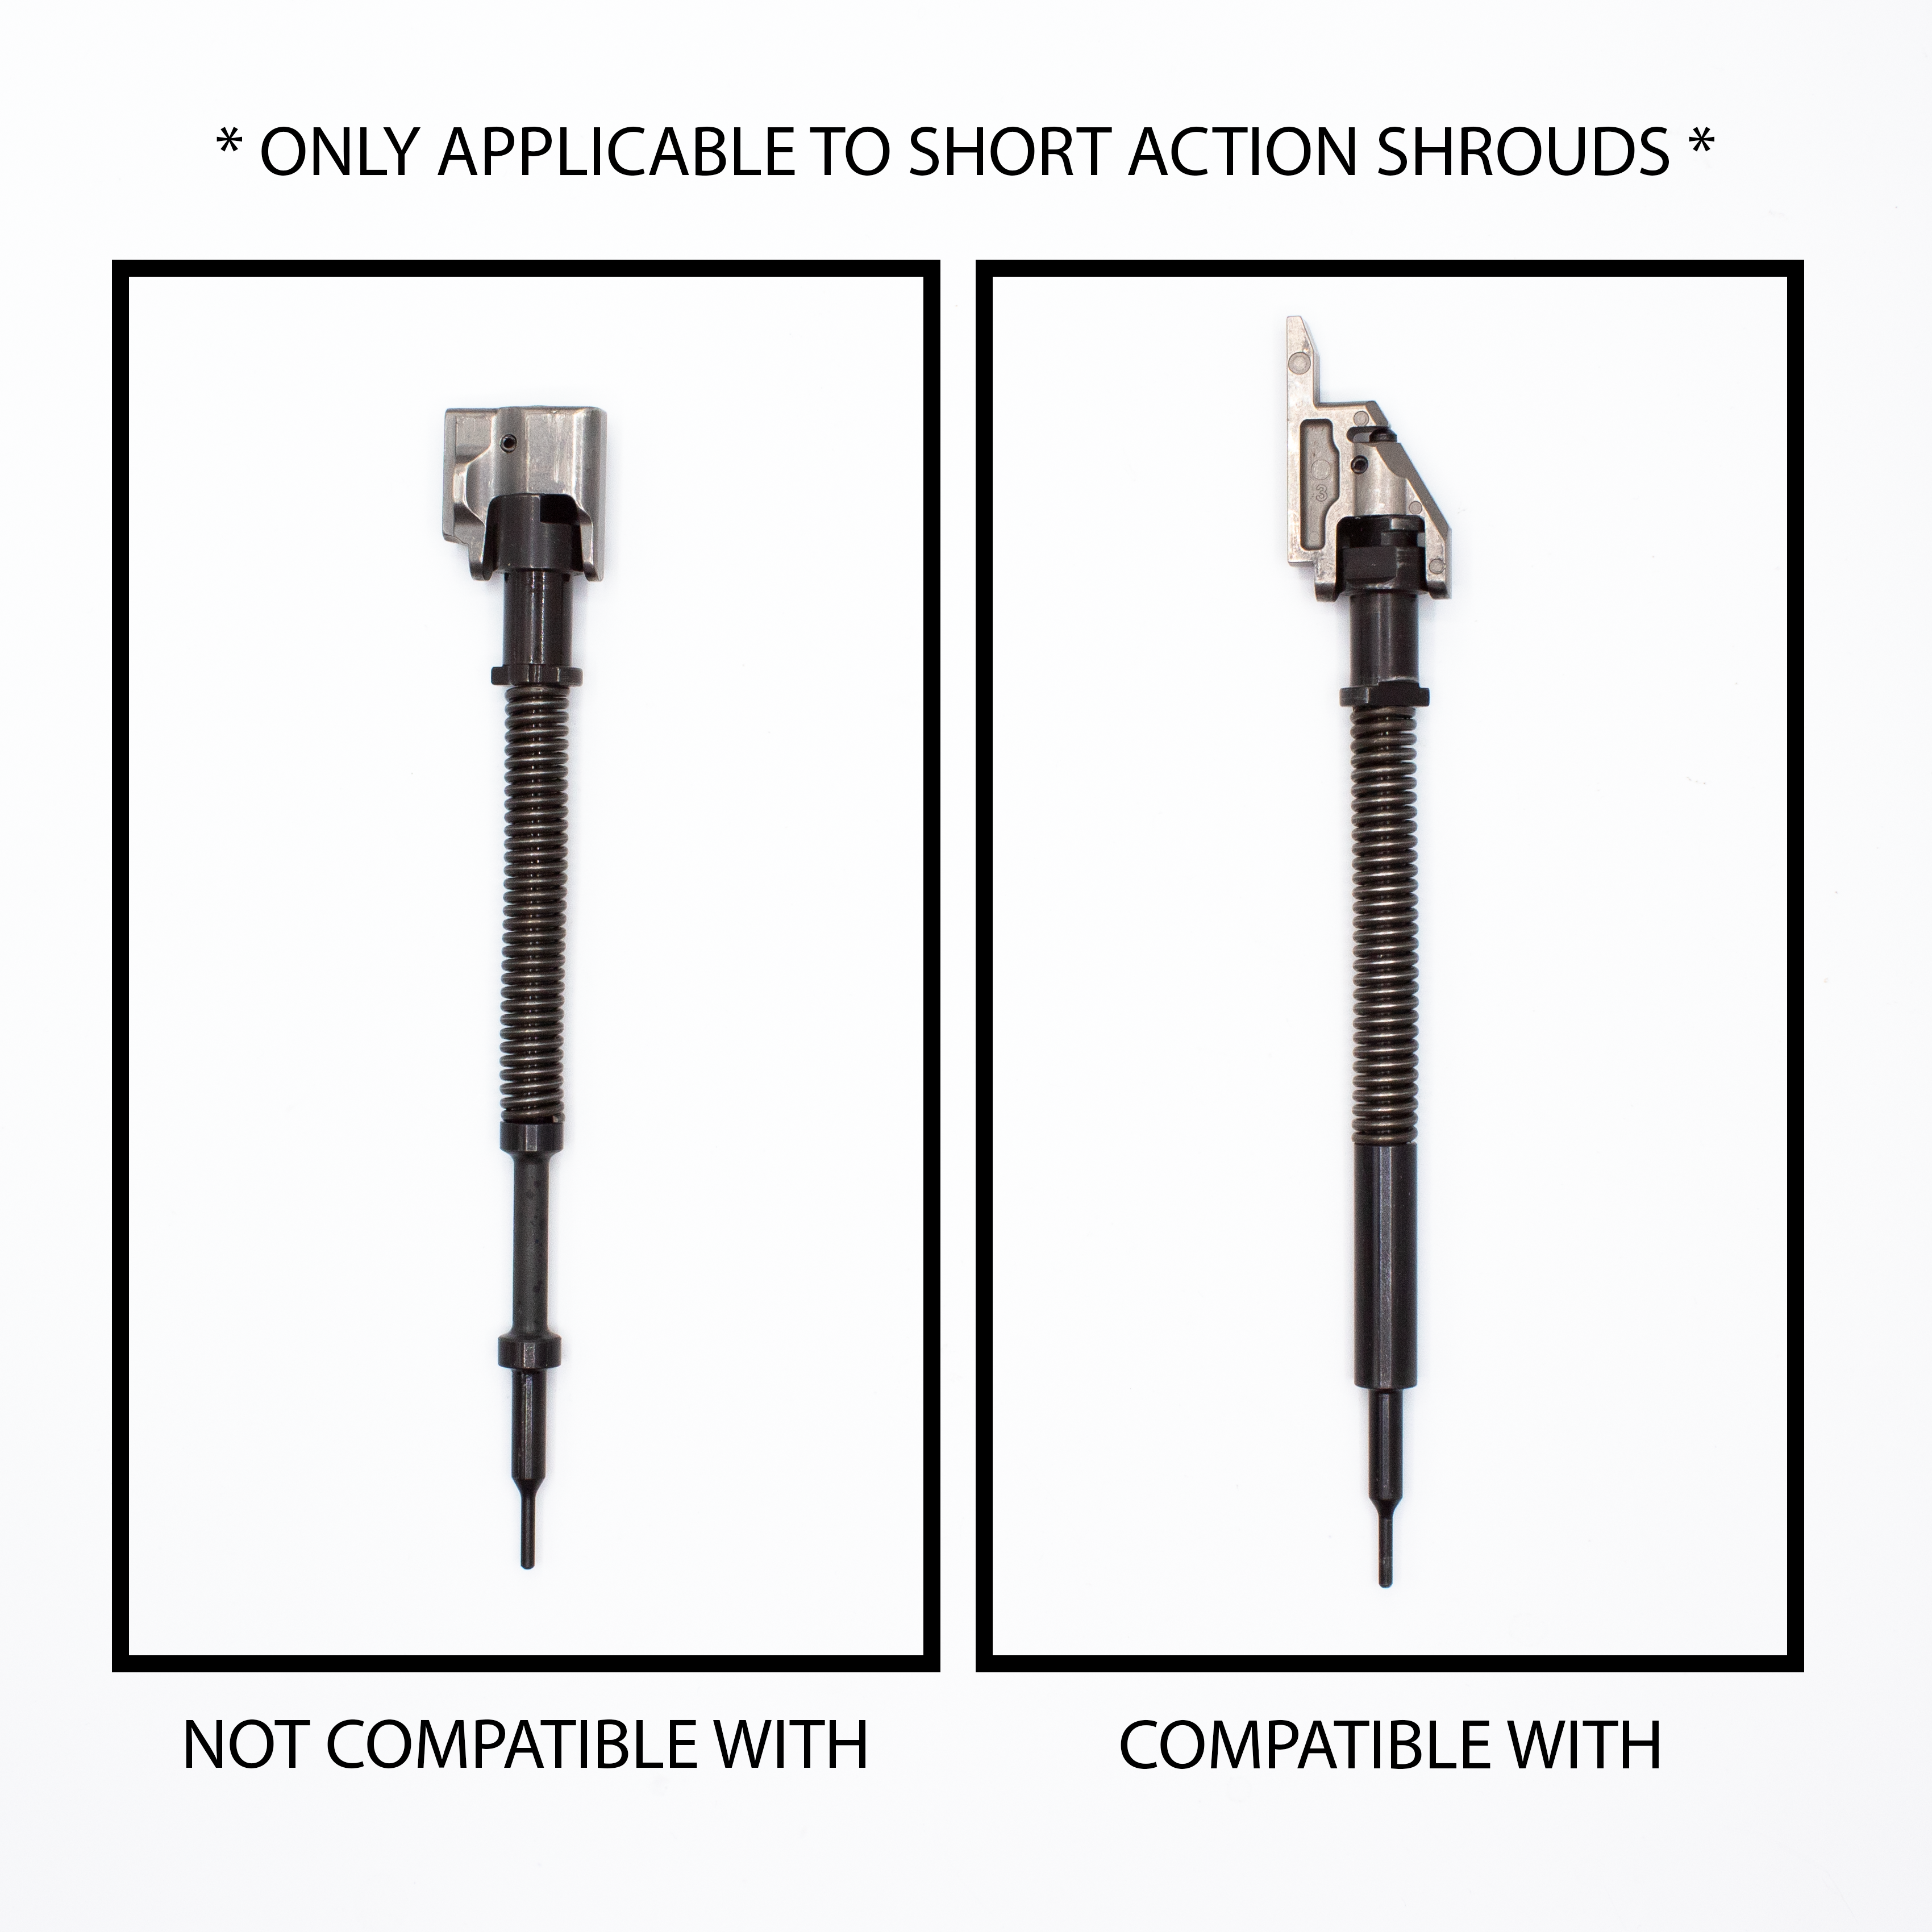 ruger-compatibility-updated.png